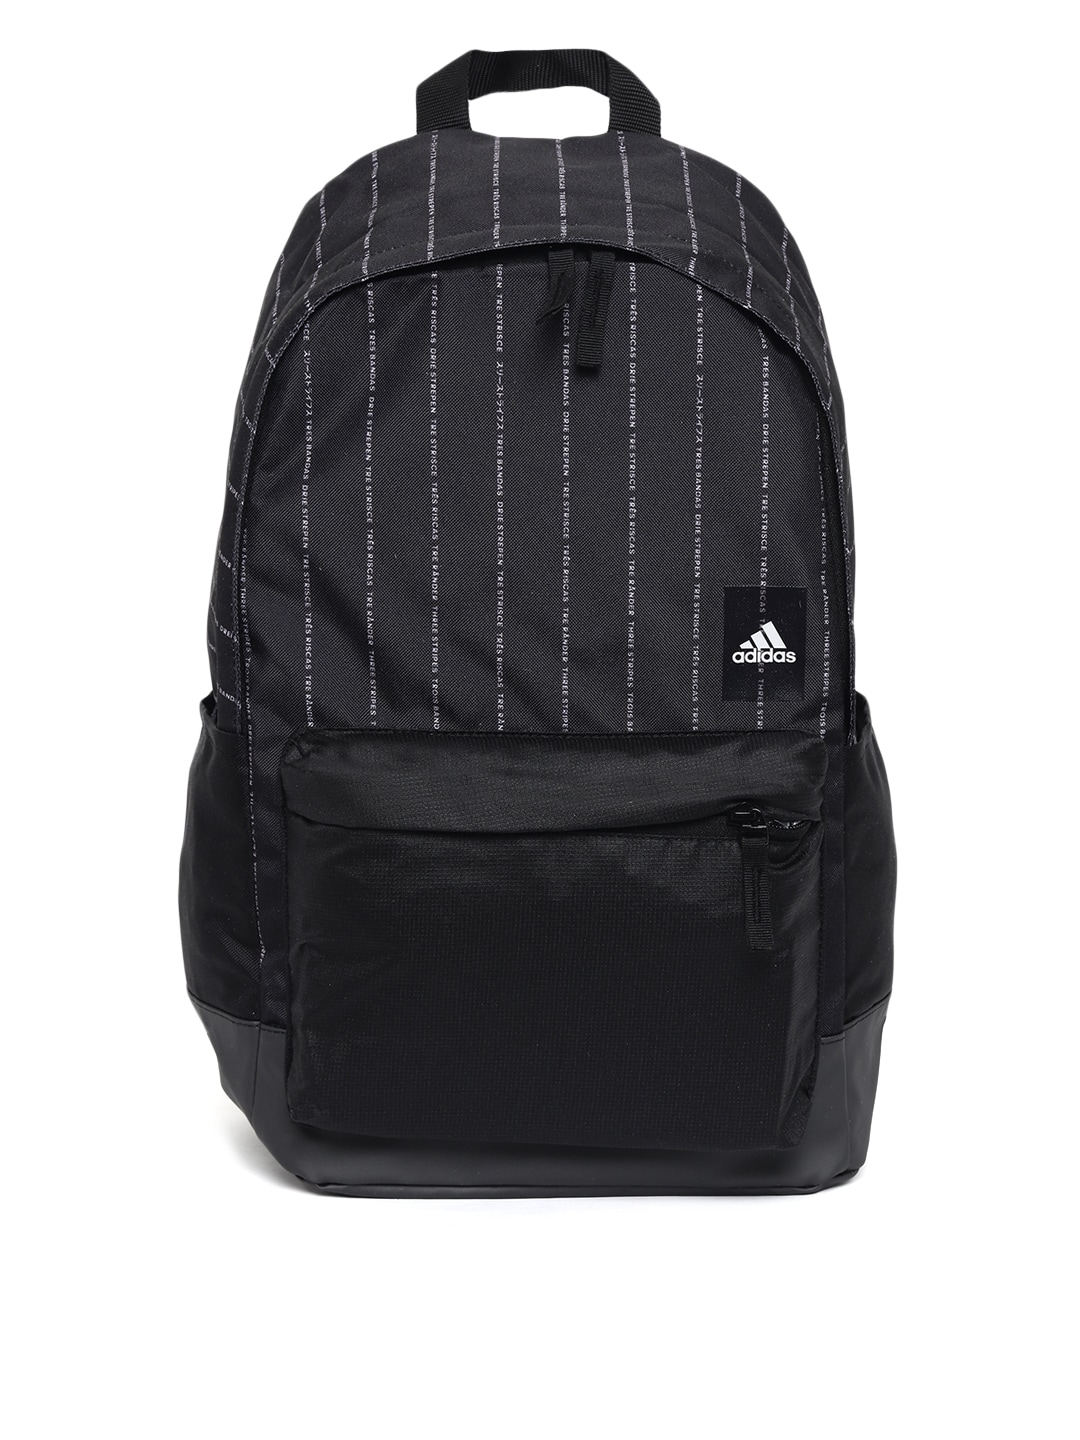 Backpacks Adidas Laptop Bags - Buy Backpacks Adidas Laptop Bags online in  India 1bcf16464156e